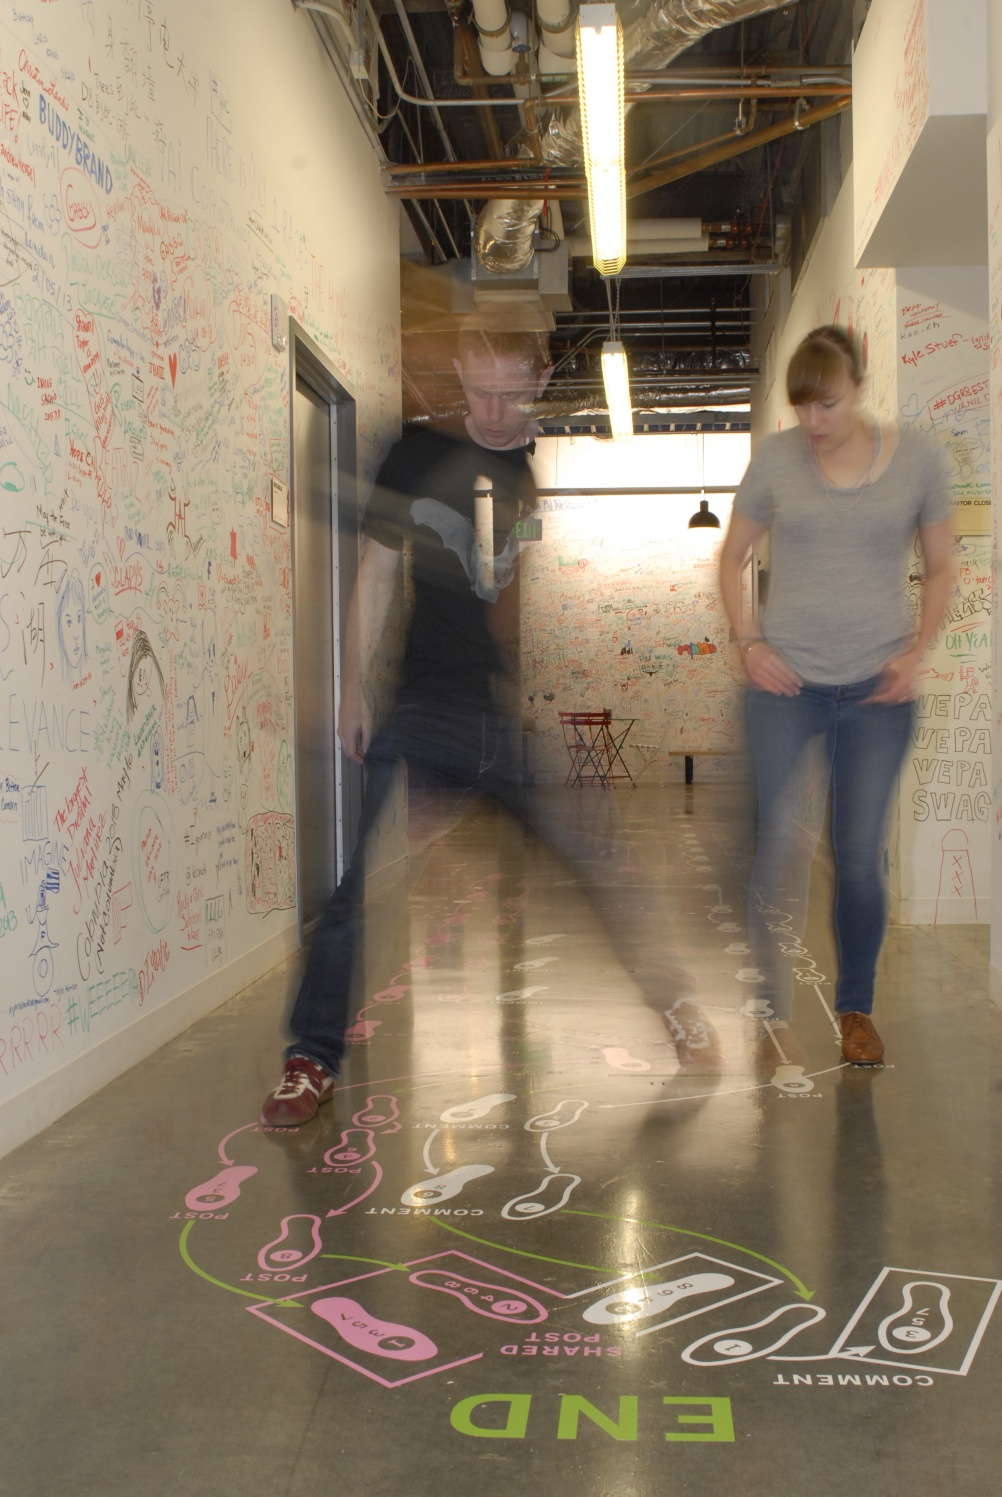 Facebook Art Residency: Relationship Dance Steps. Photograph by Steve McInery